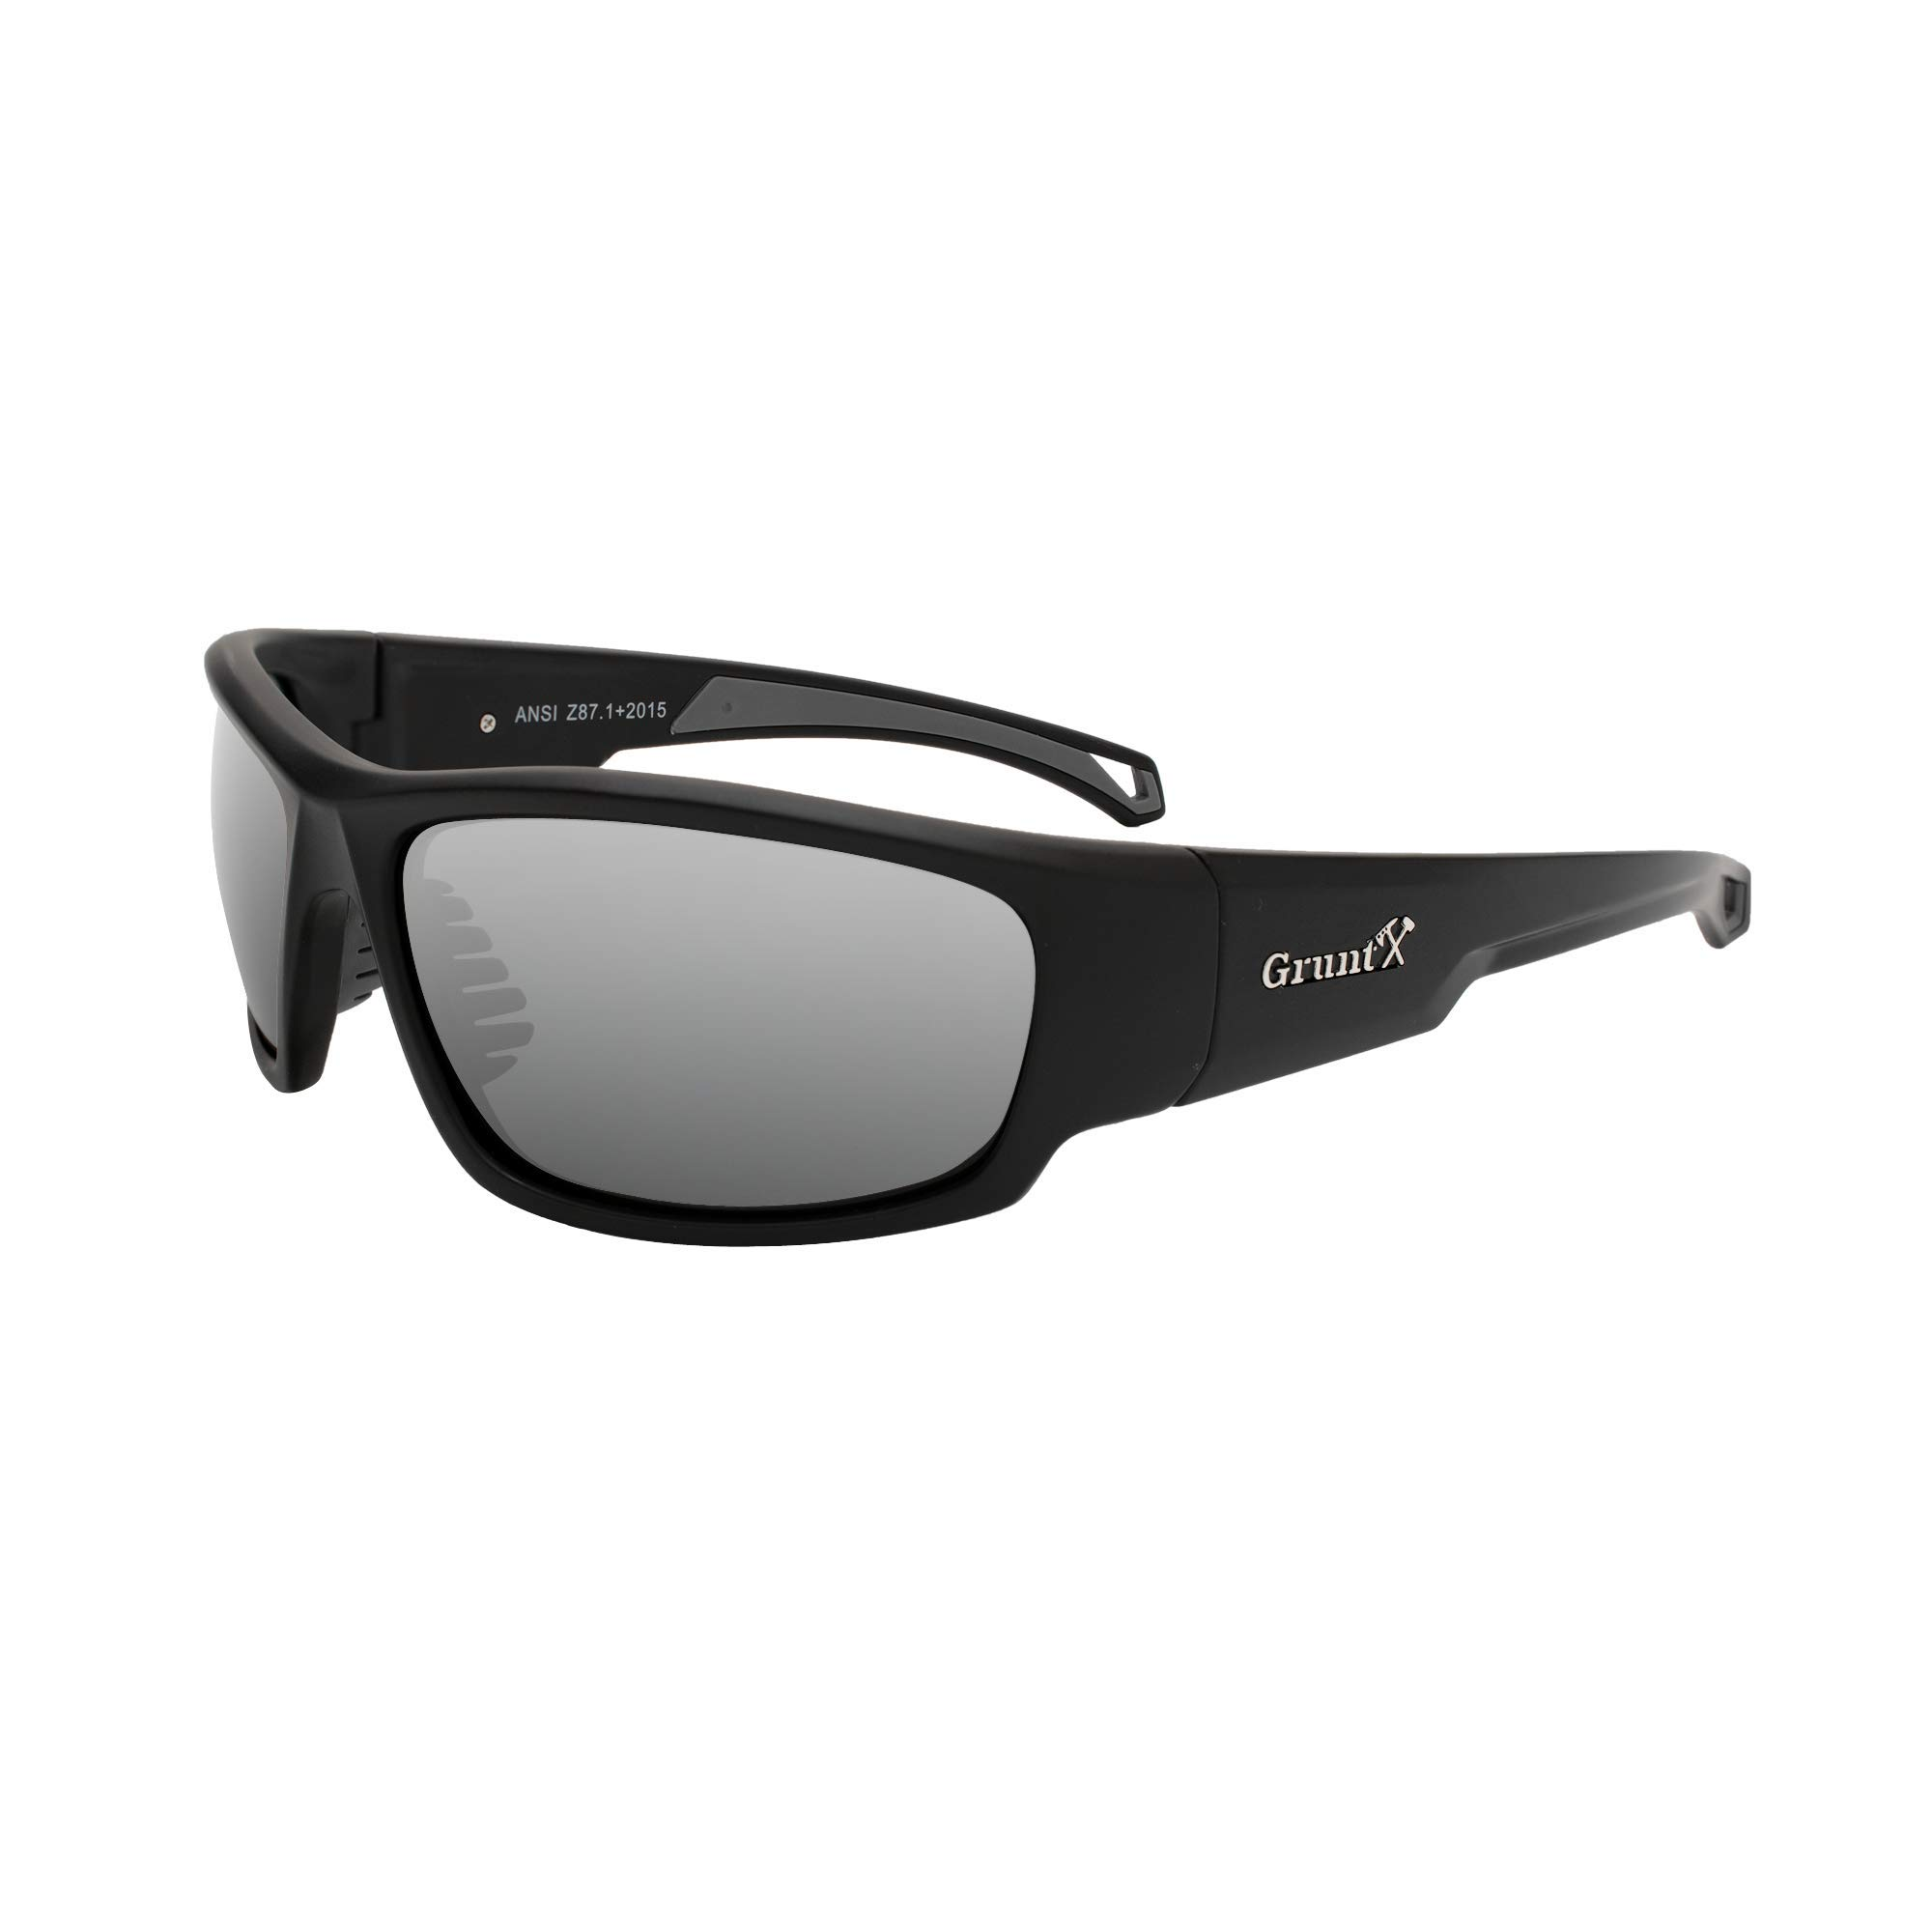 GruntX Ballistic Safety Sunglasses for Men - Polarized - Meets ANSI z87.1+ - Anti Scratch and UV Protection - Perfect for: Shooting, Construction, and Outdoor Sports by GruntX